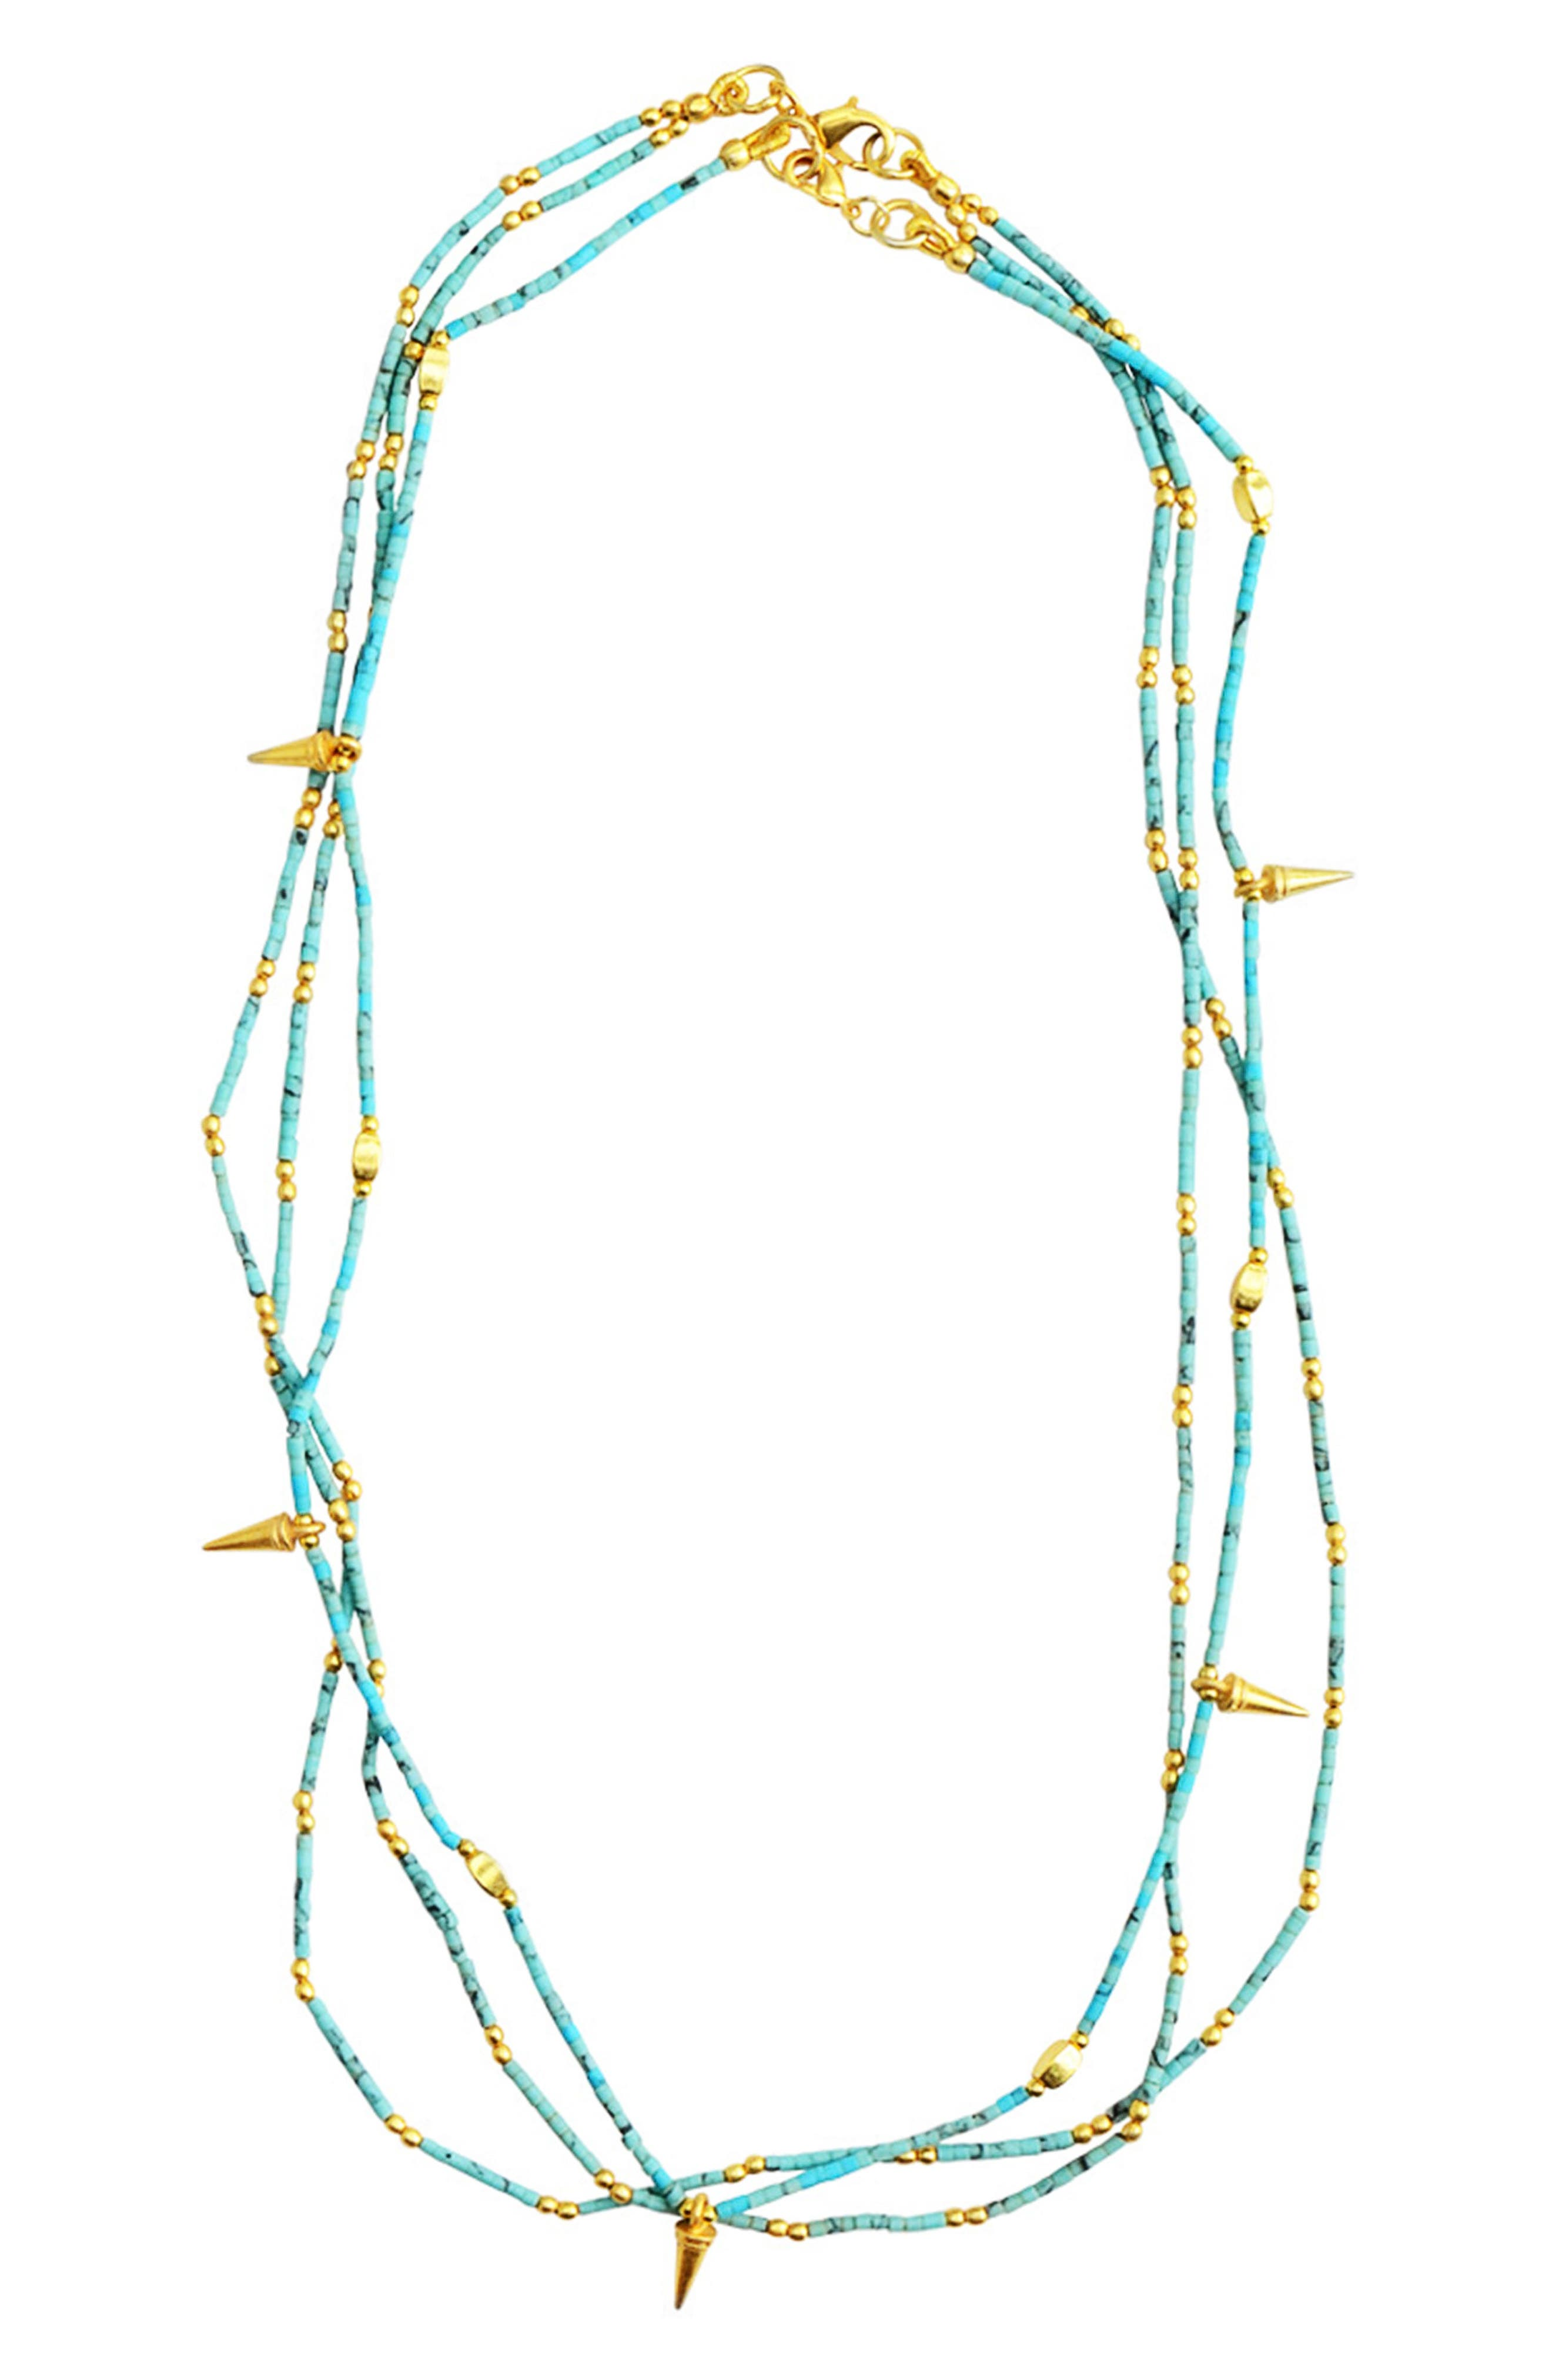 Fleur Set of 2 Necklaces,                         Main,                         color, Turquoise